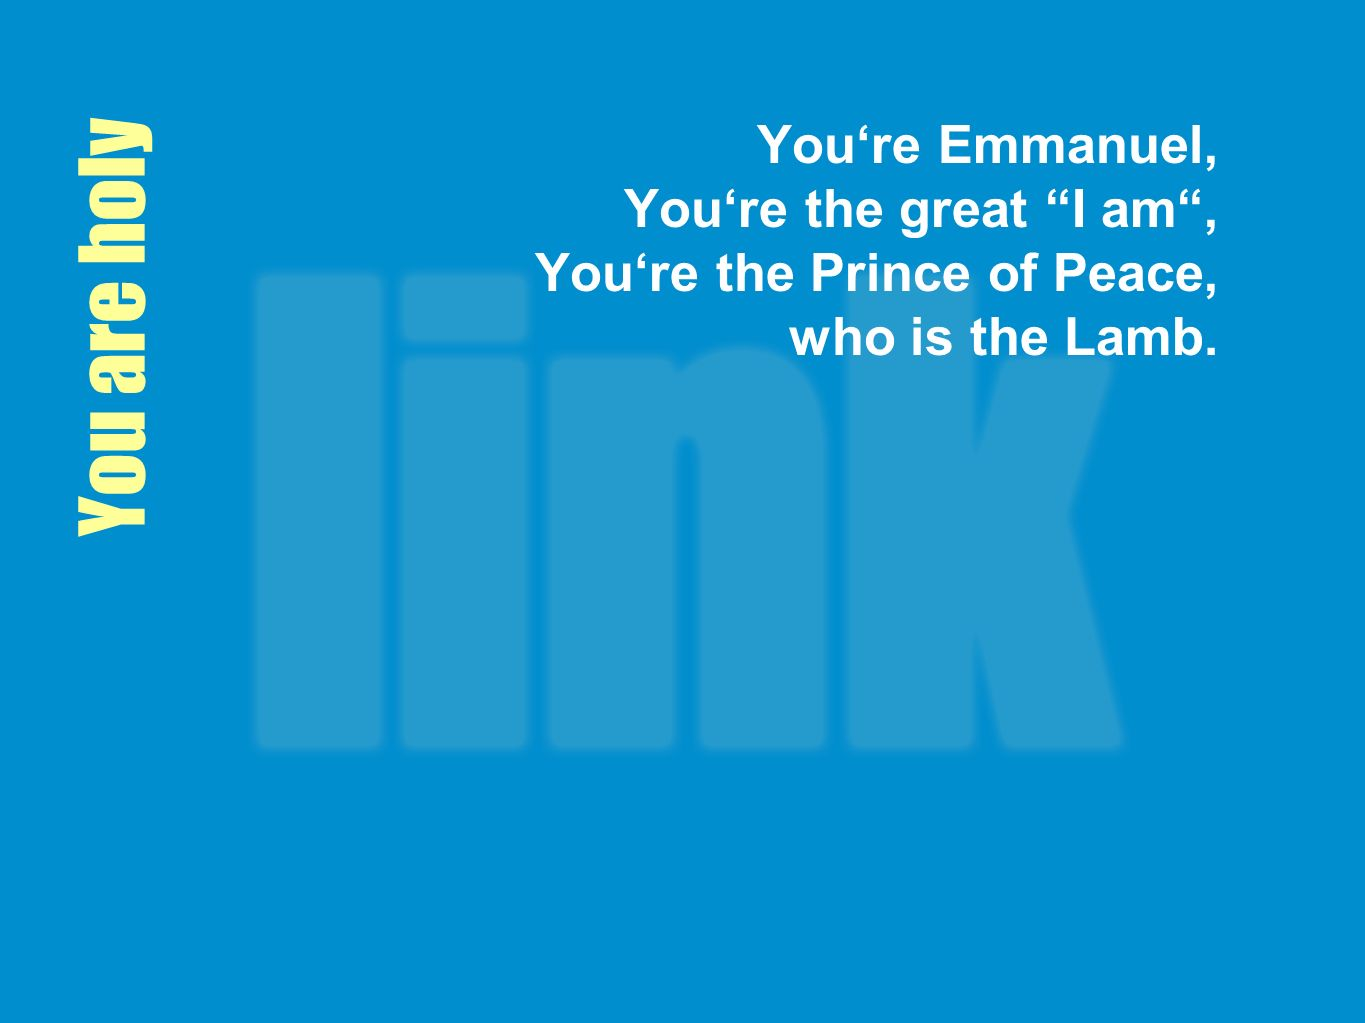 You're Emmanuel, You're the great I am , You're the Prince of Peace, who is the Lamb.